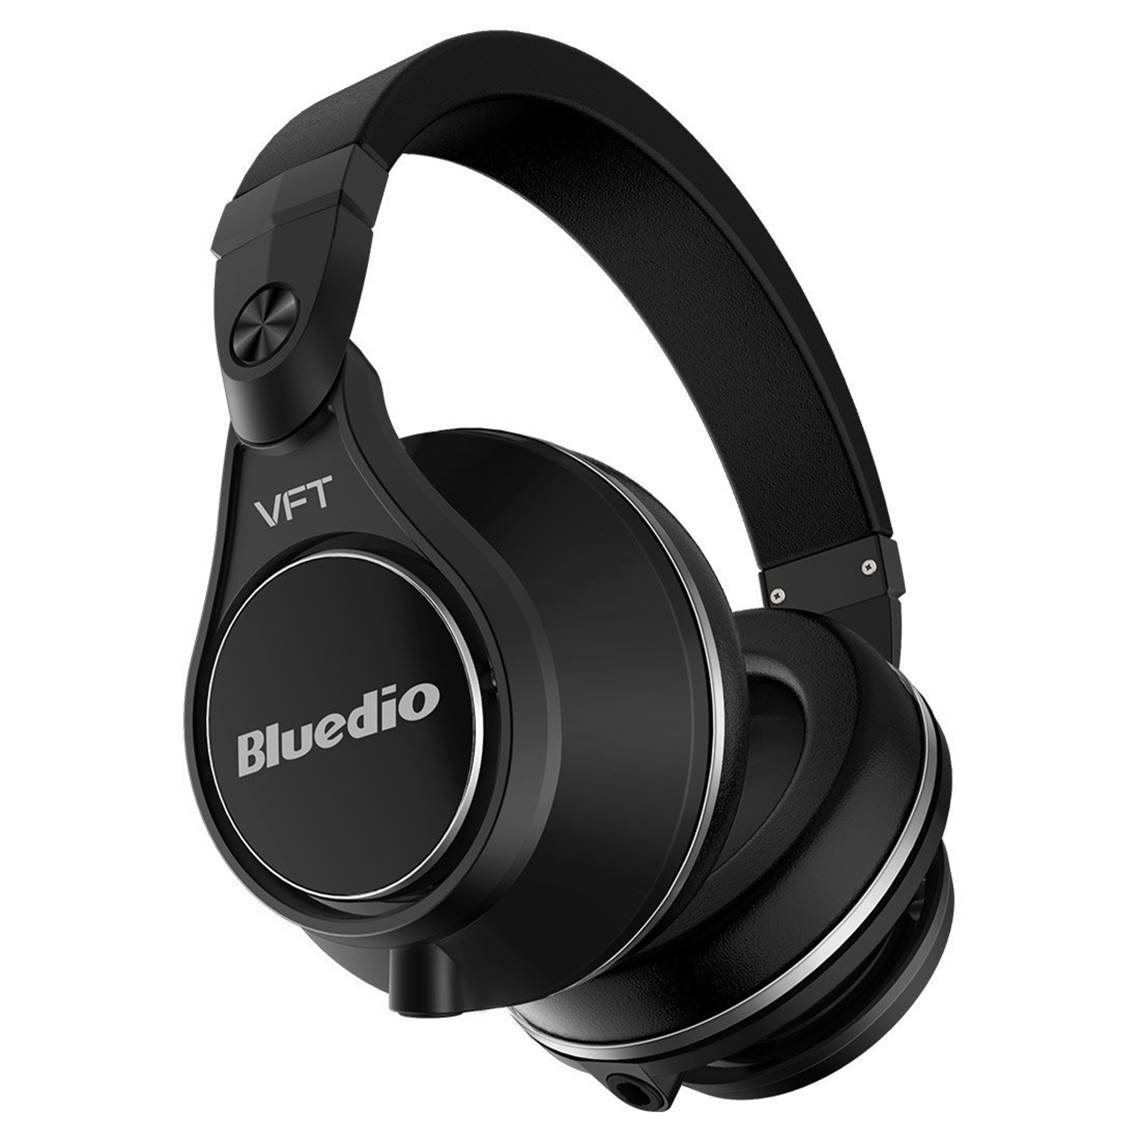 Bluedio U Plus Wireless Headphones